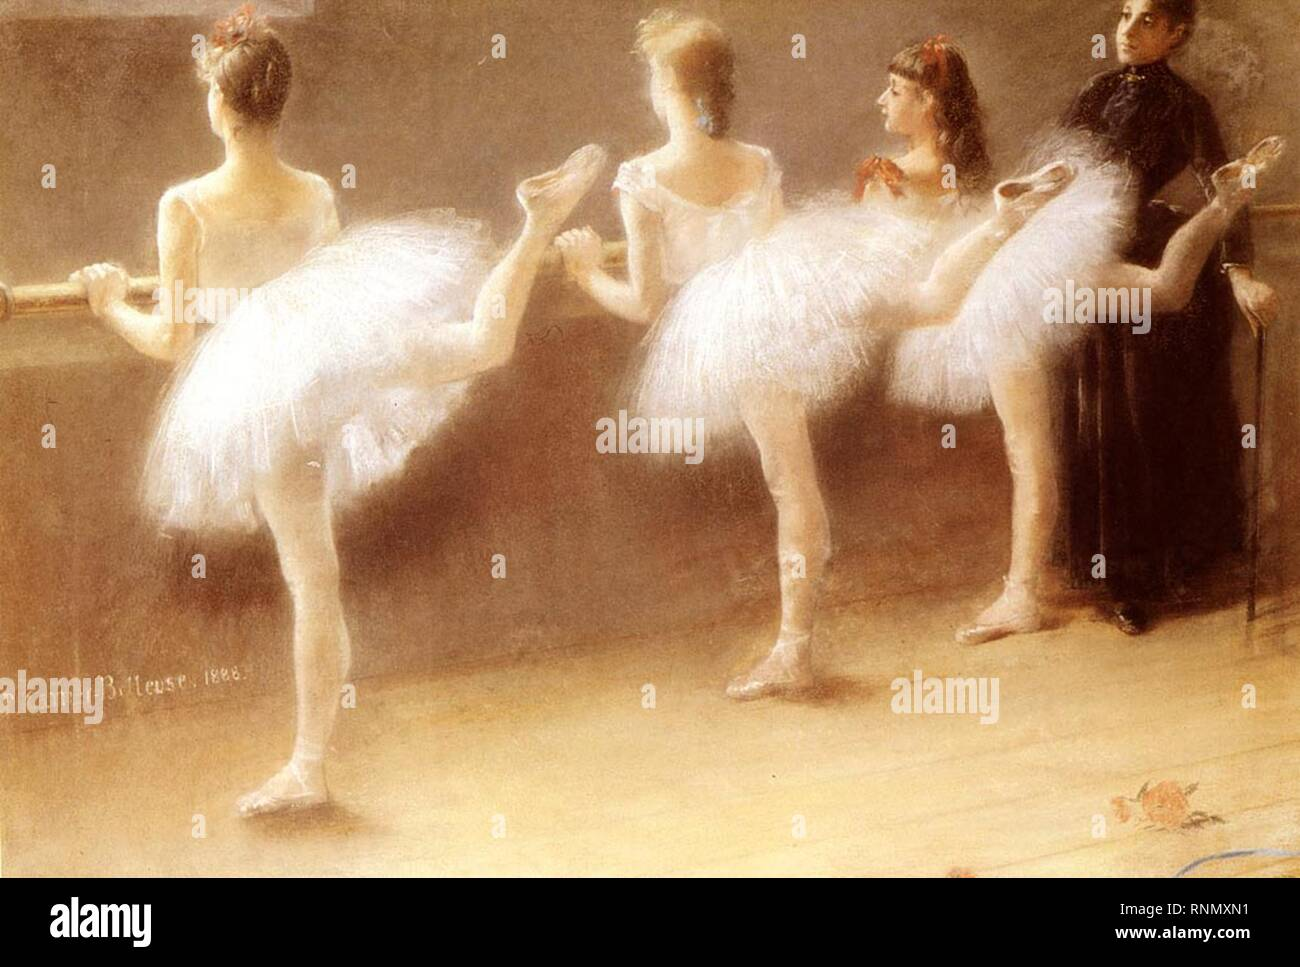 Carrier Belleuse Pierre At The Barre. Stock Photo